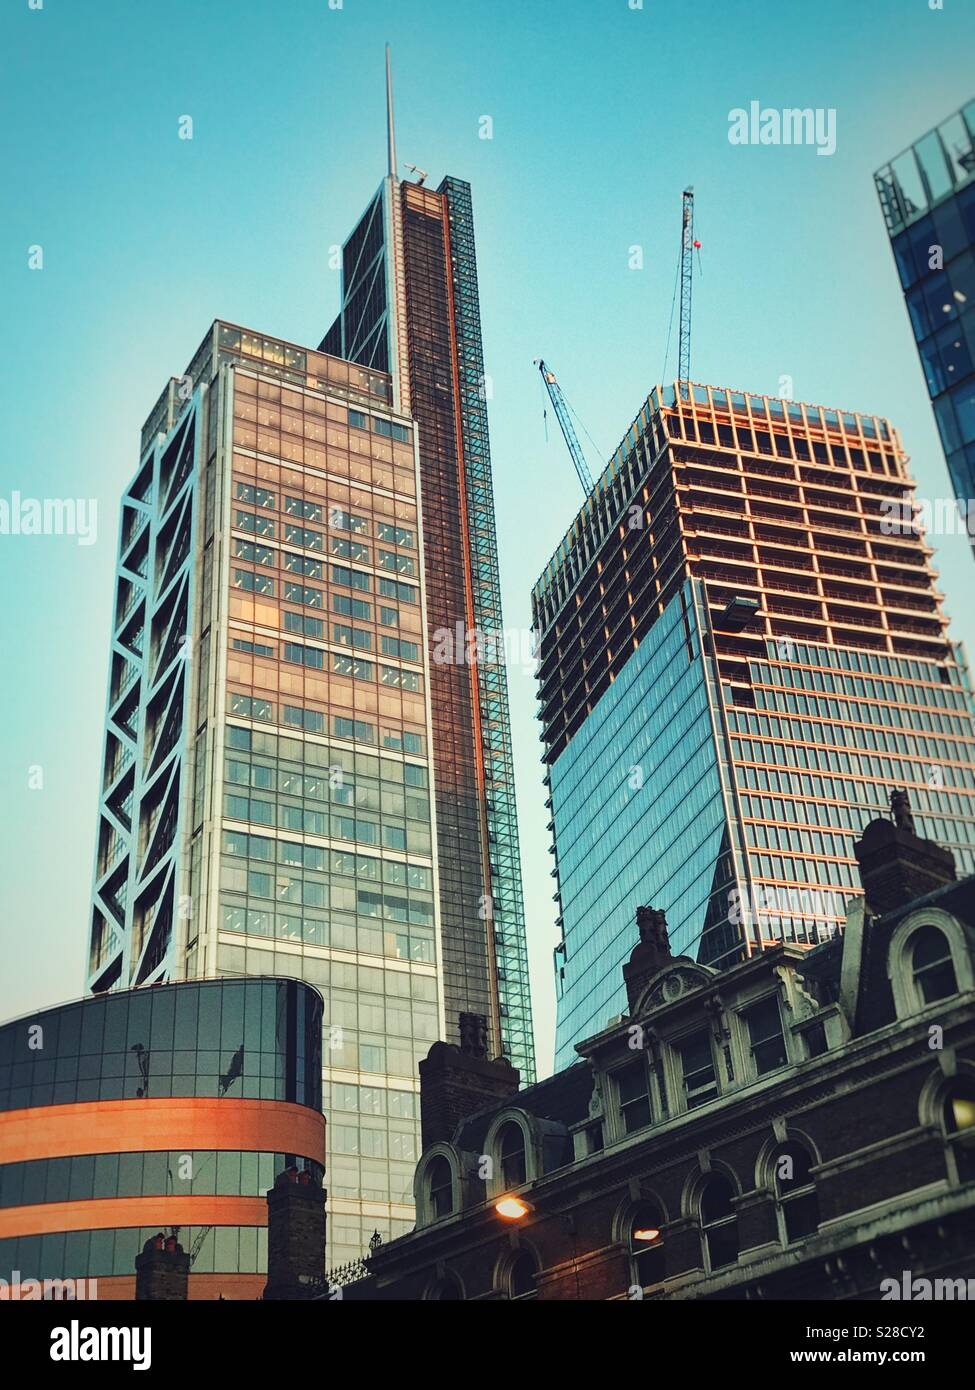 Buildings in the Square Mile, City of London from Liverpool Street Station - Stock Image